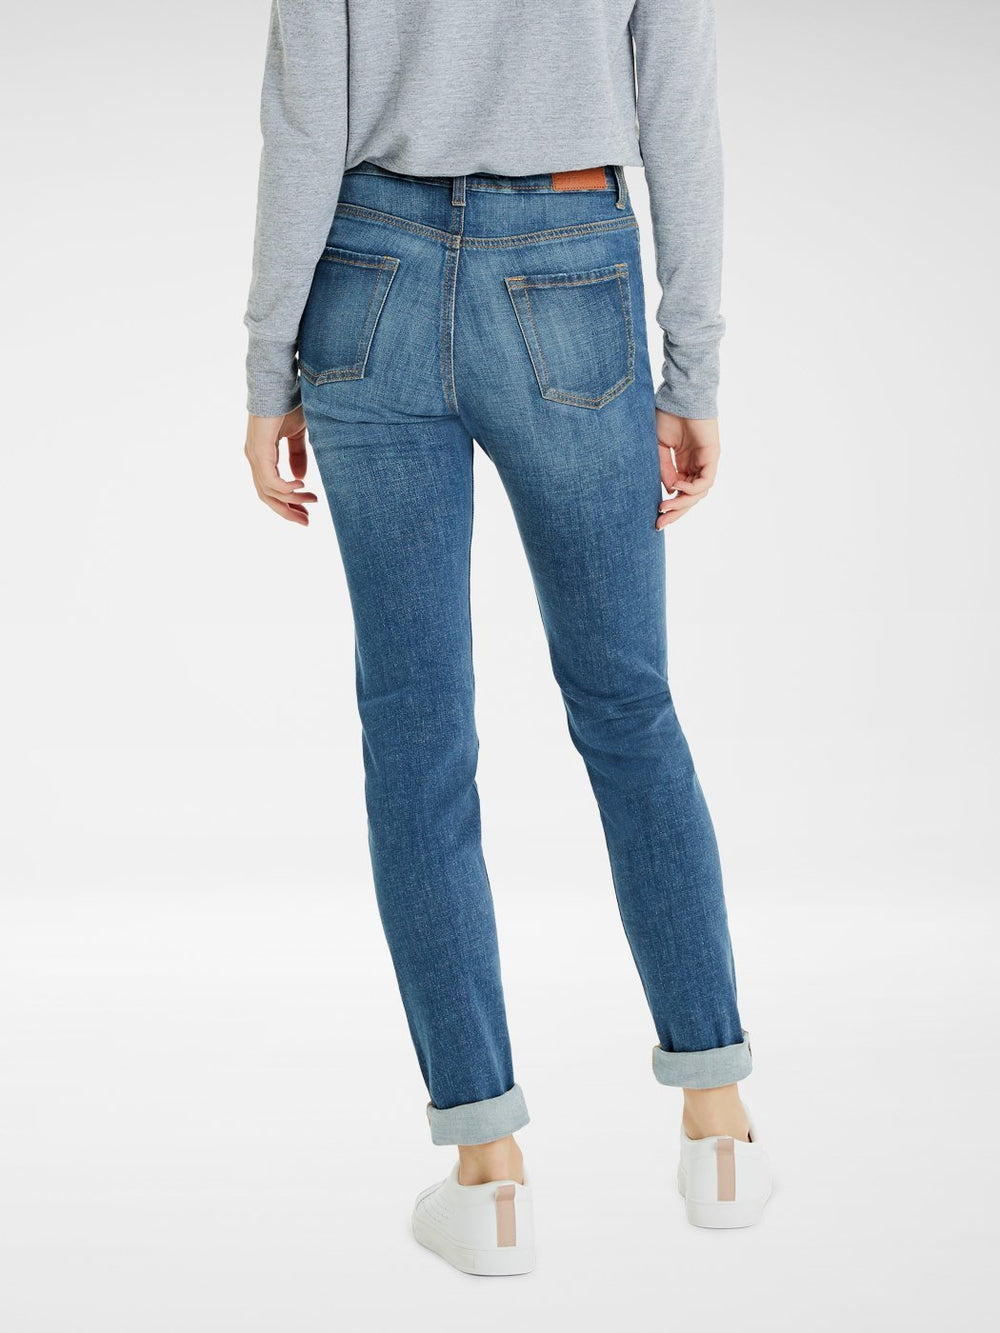 Outland Denim - Lucy Jean in True Blue